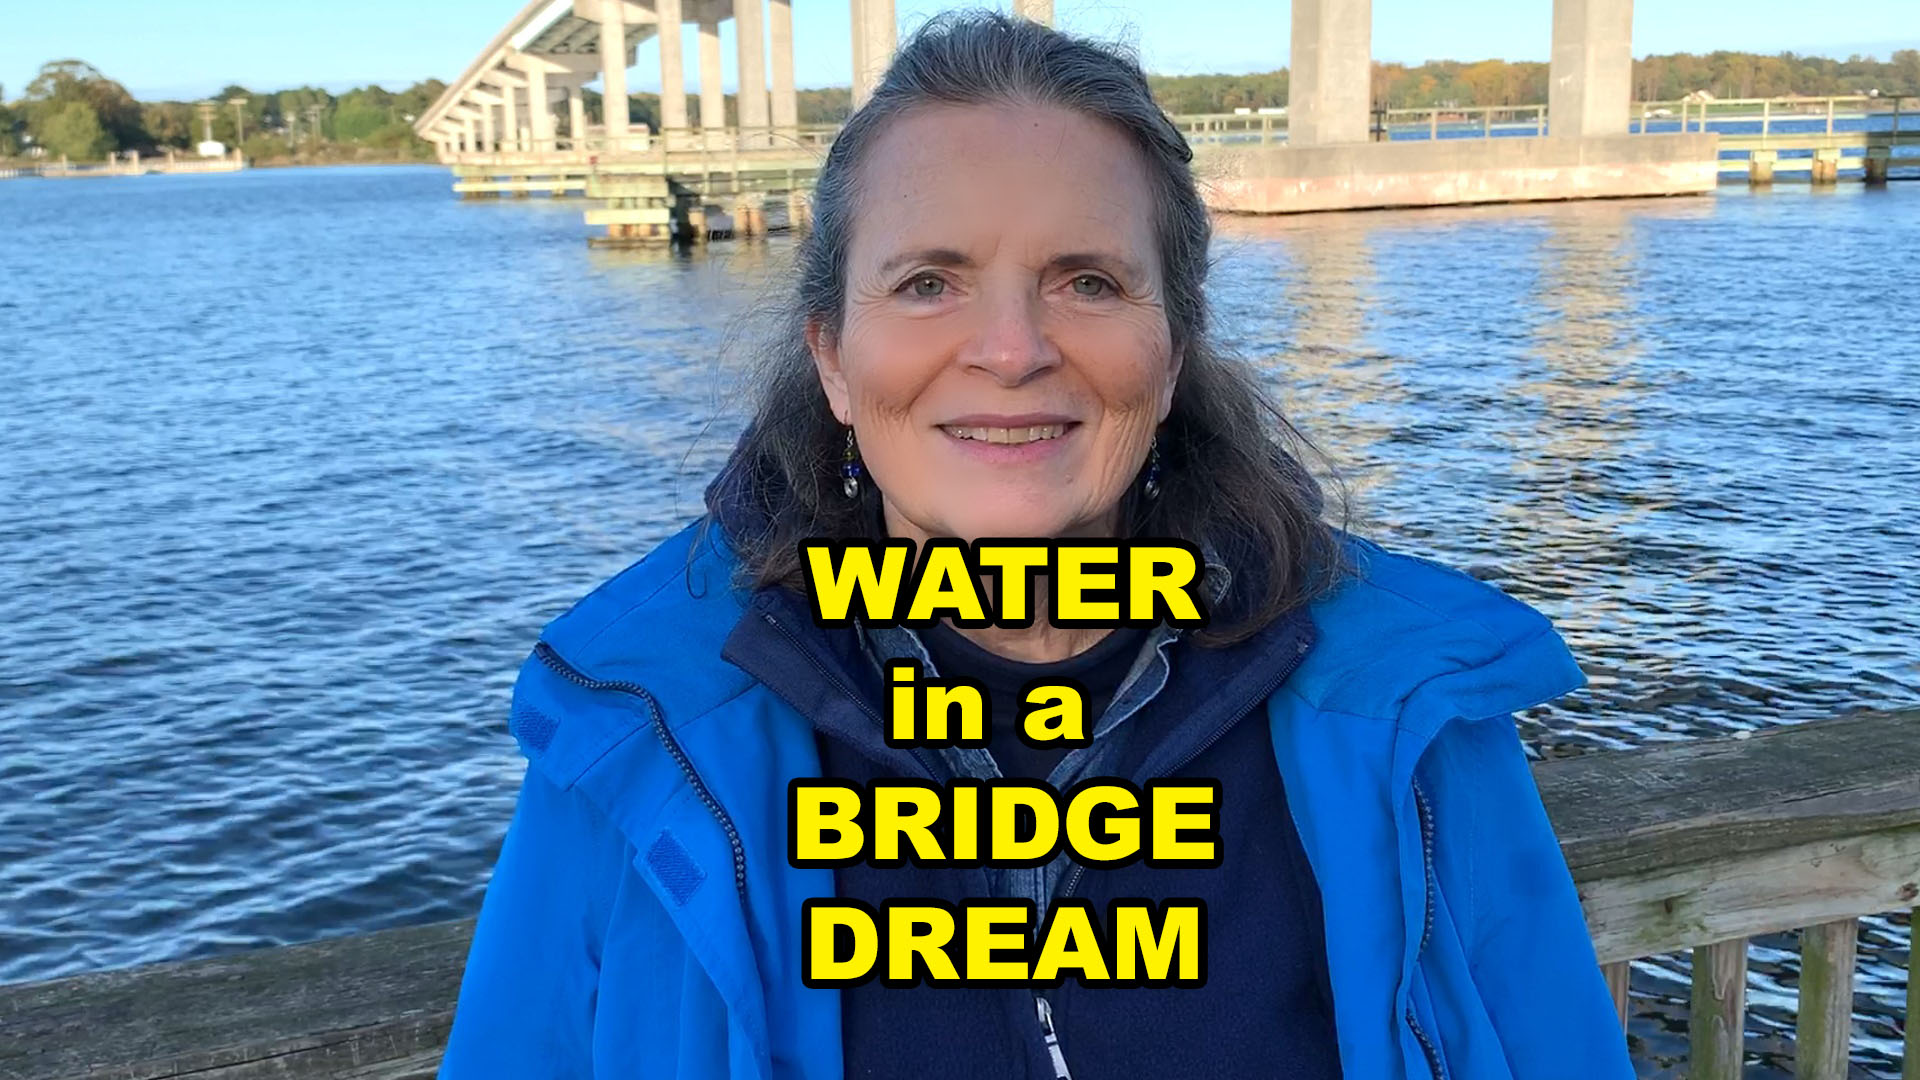 what does water mean in a bridge dream